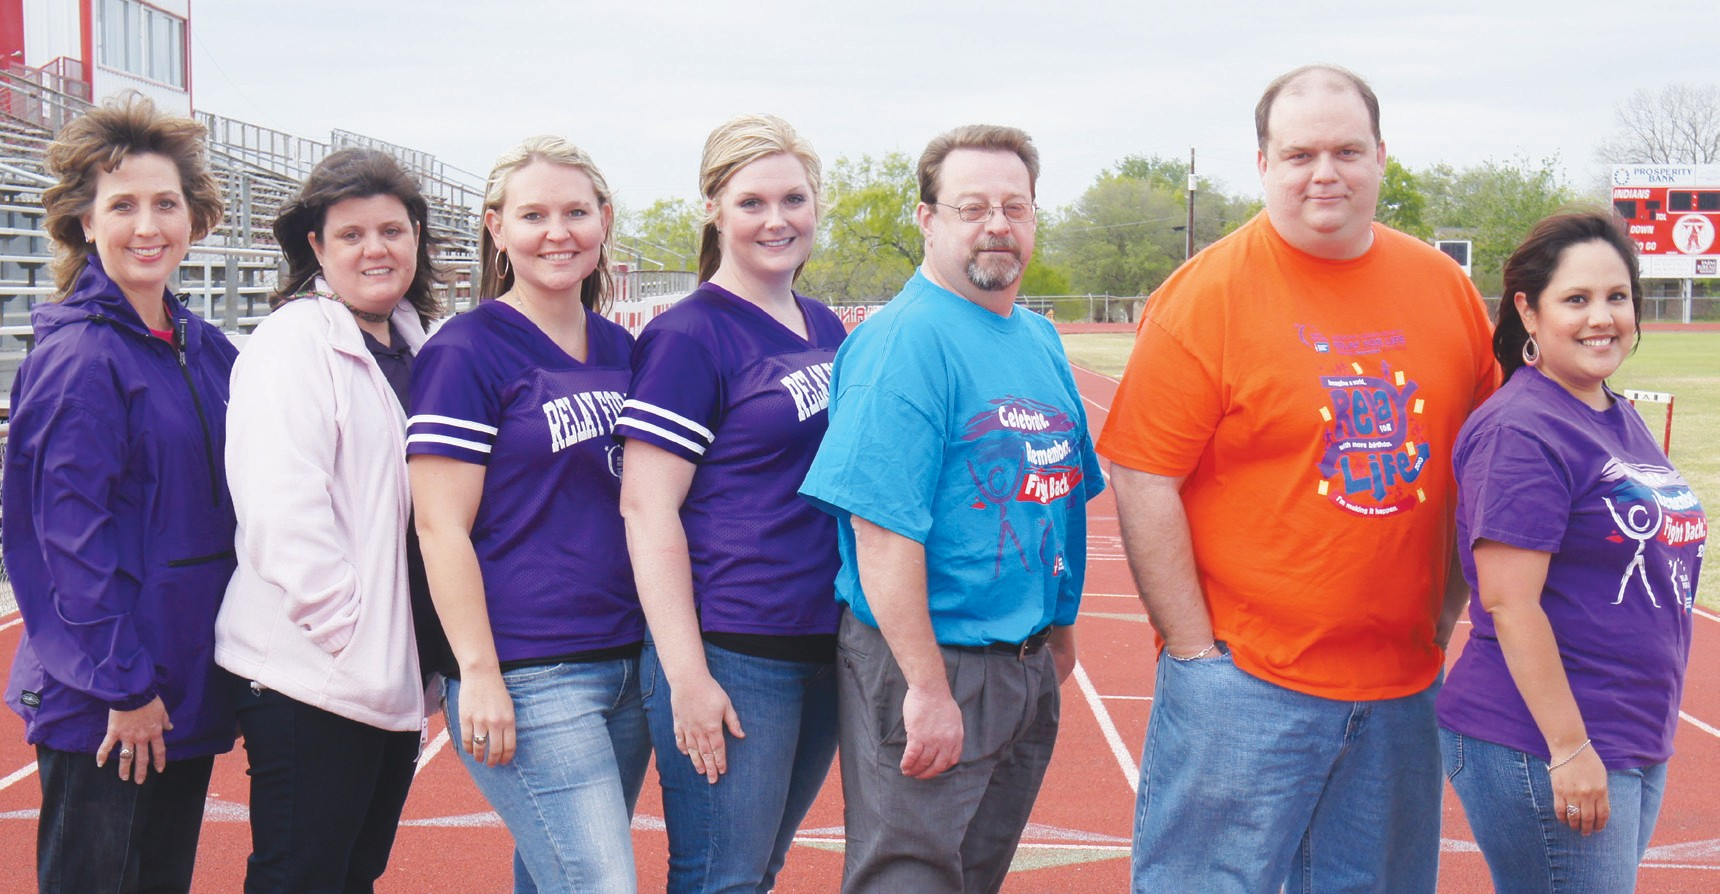 The Relay For Life of Atascosa County committee pictured left to right Cheryl Northcott, Laura Marsh, Jessi Brymer, Amber Zellweger (Relay for Life Committee Chair), John Pish (Community Manager-American Cancer Society), David Wickersham and Kara Luna. Not pictured Sheri Zellweger, Gail Dale, Traci Page and Kristy David. They all encourage you to come fight back against cancer and join them at the Relay For Life event at Jourdanton Football Stadium on April 6th at 7:00 pm.